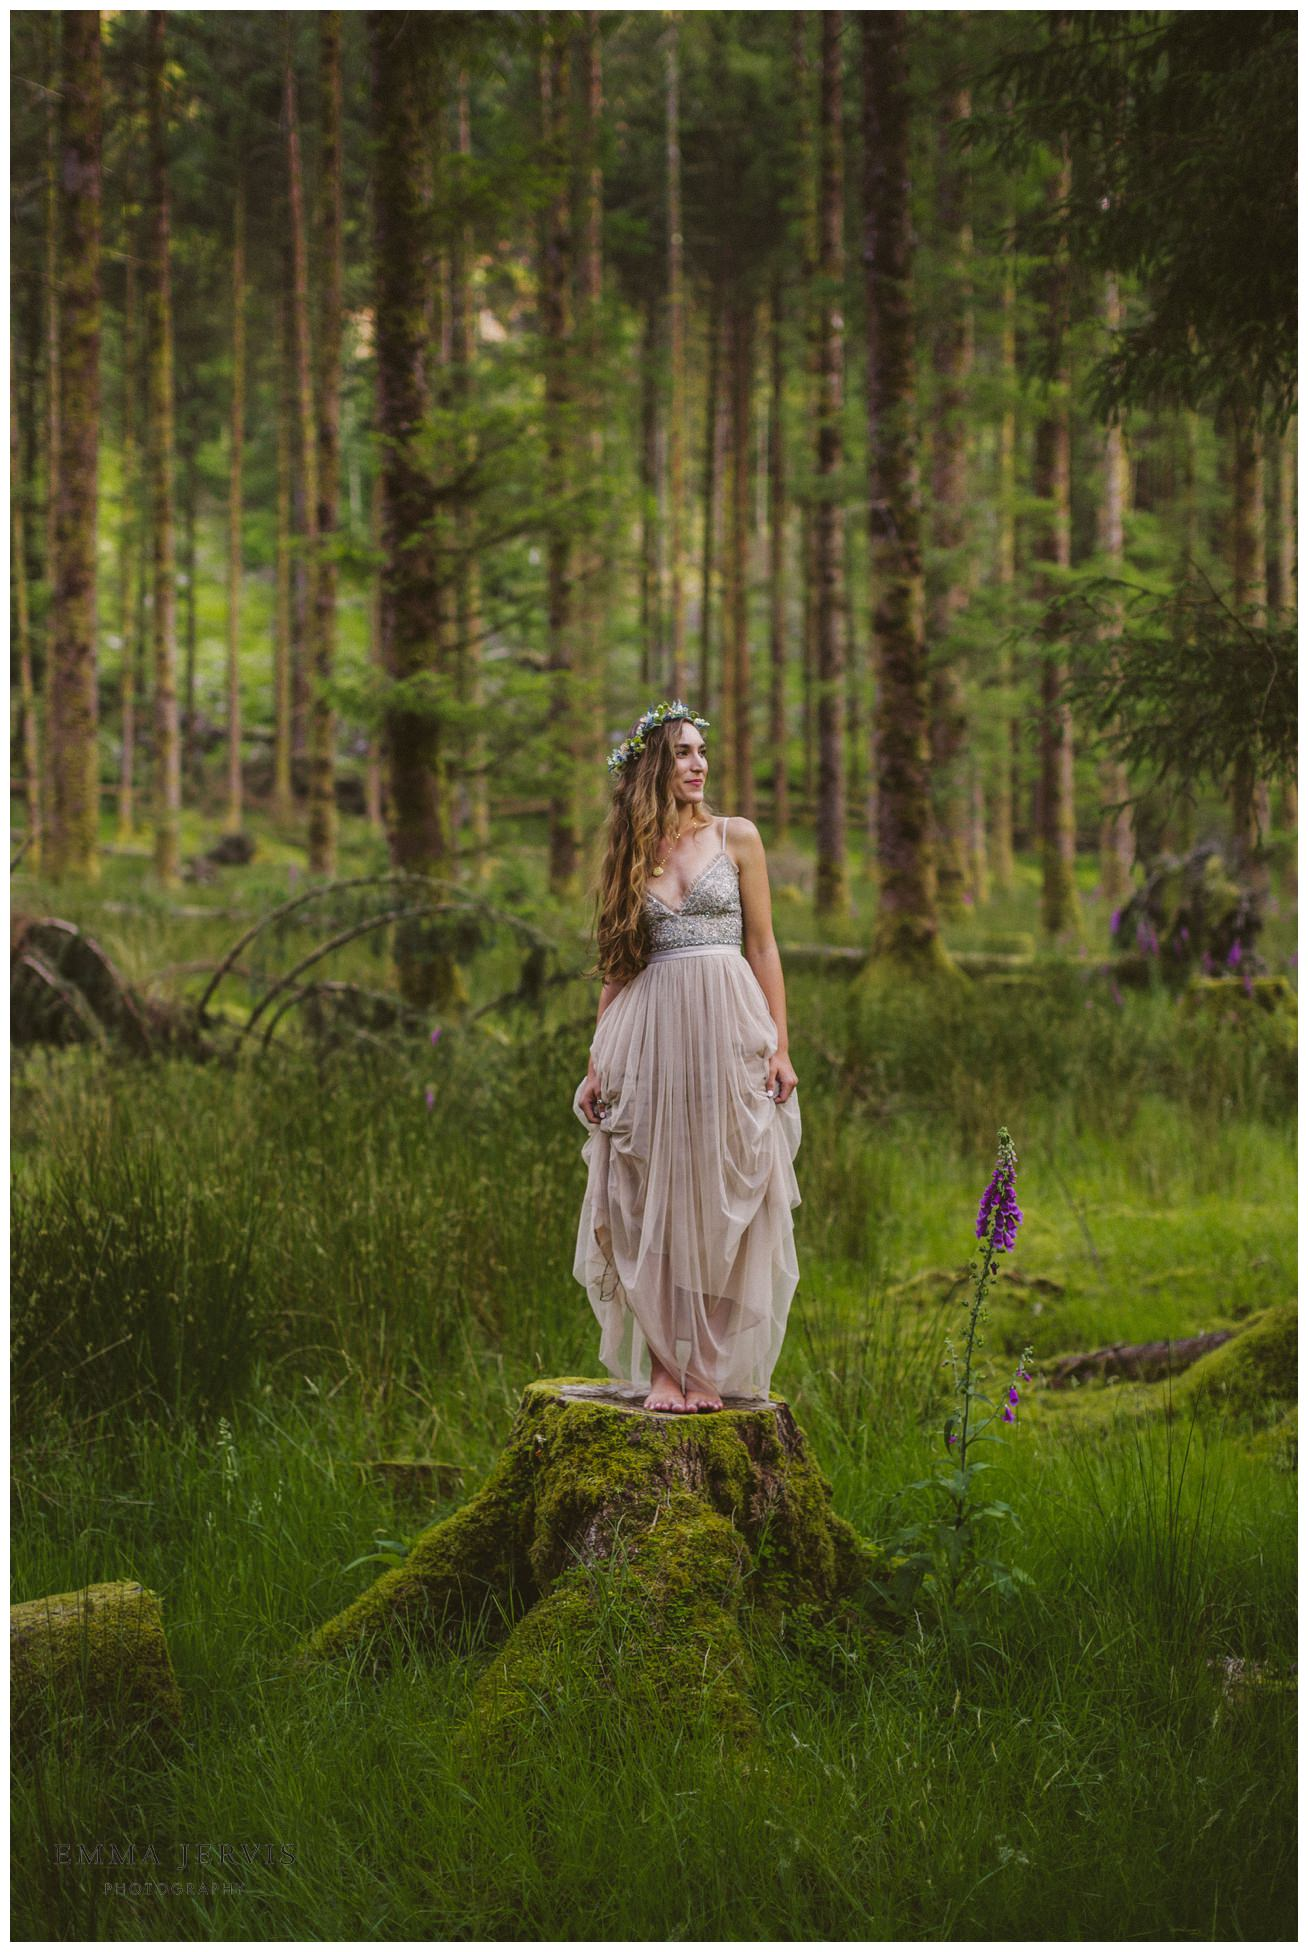 Gougane Barra wedding forest bride